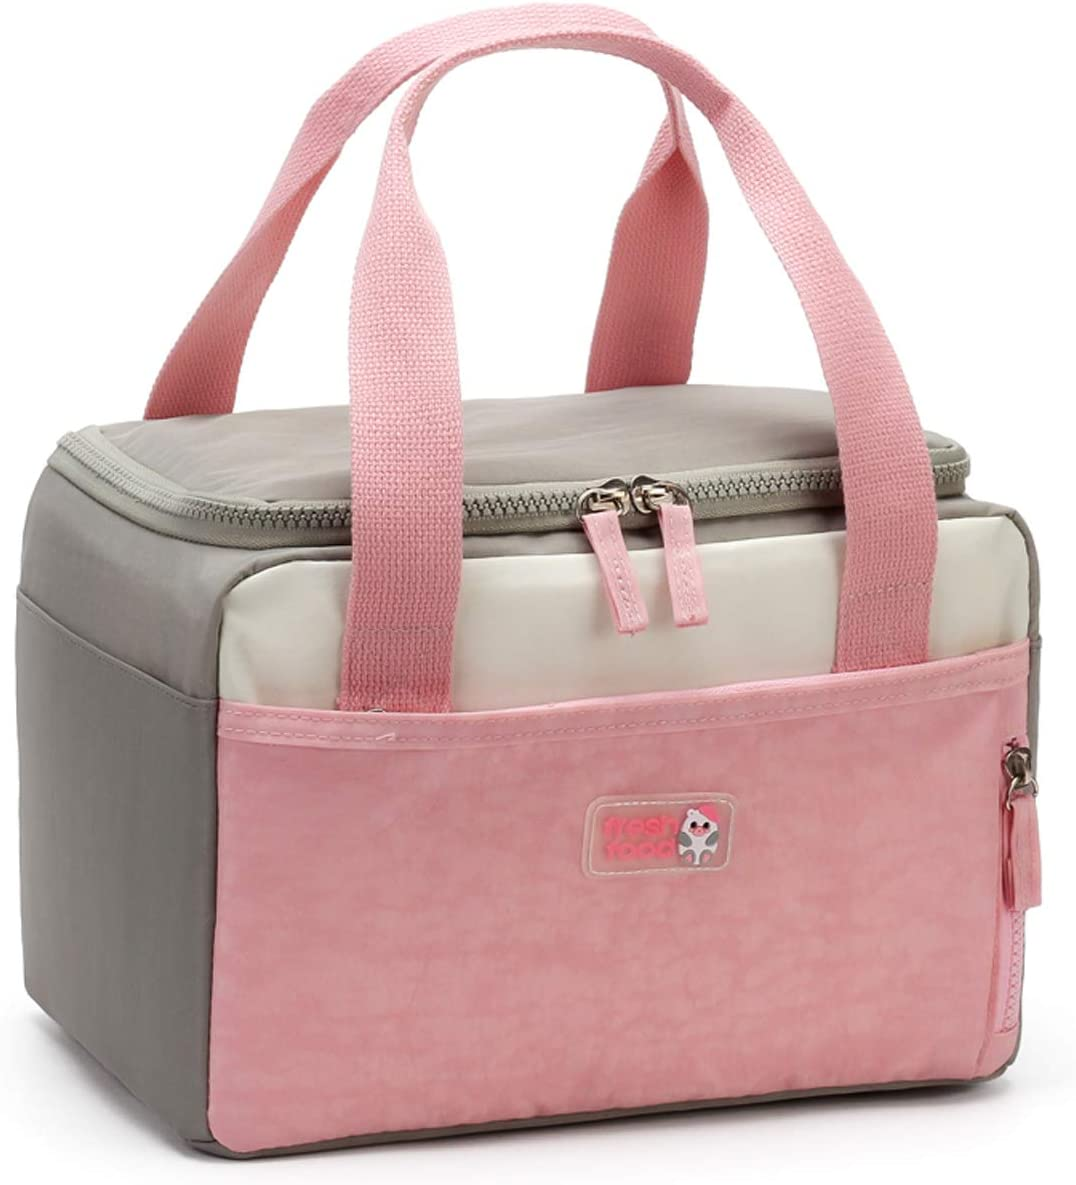 Women's/Men's Insulated Lunch Bag-Office School Outdoor Picnic Beach Reusable Heat And Fresh Lunch Box-Leakproof Cool Tote Bag-Pink